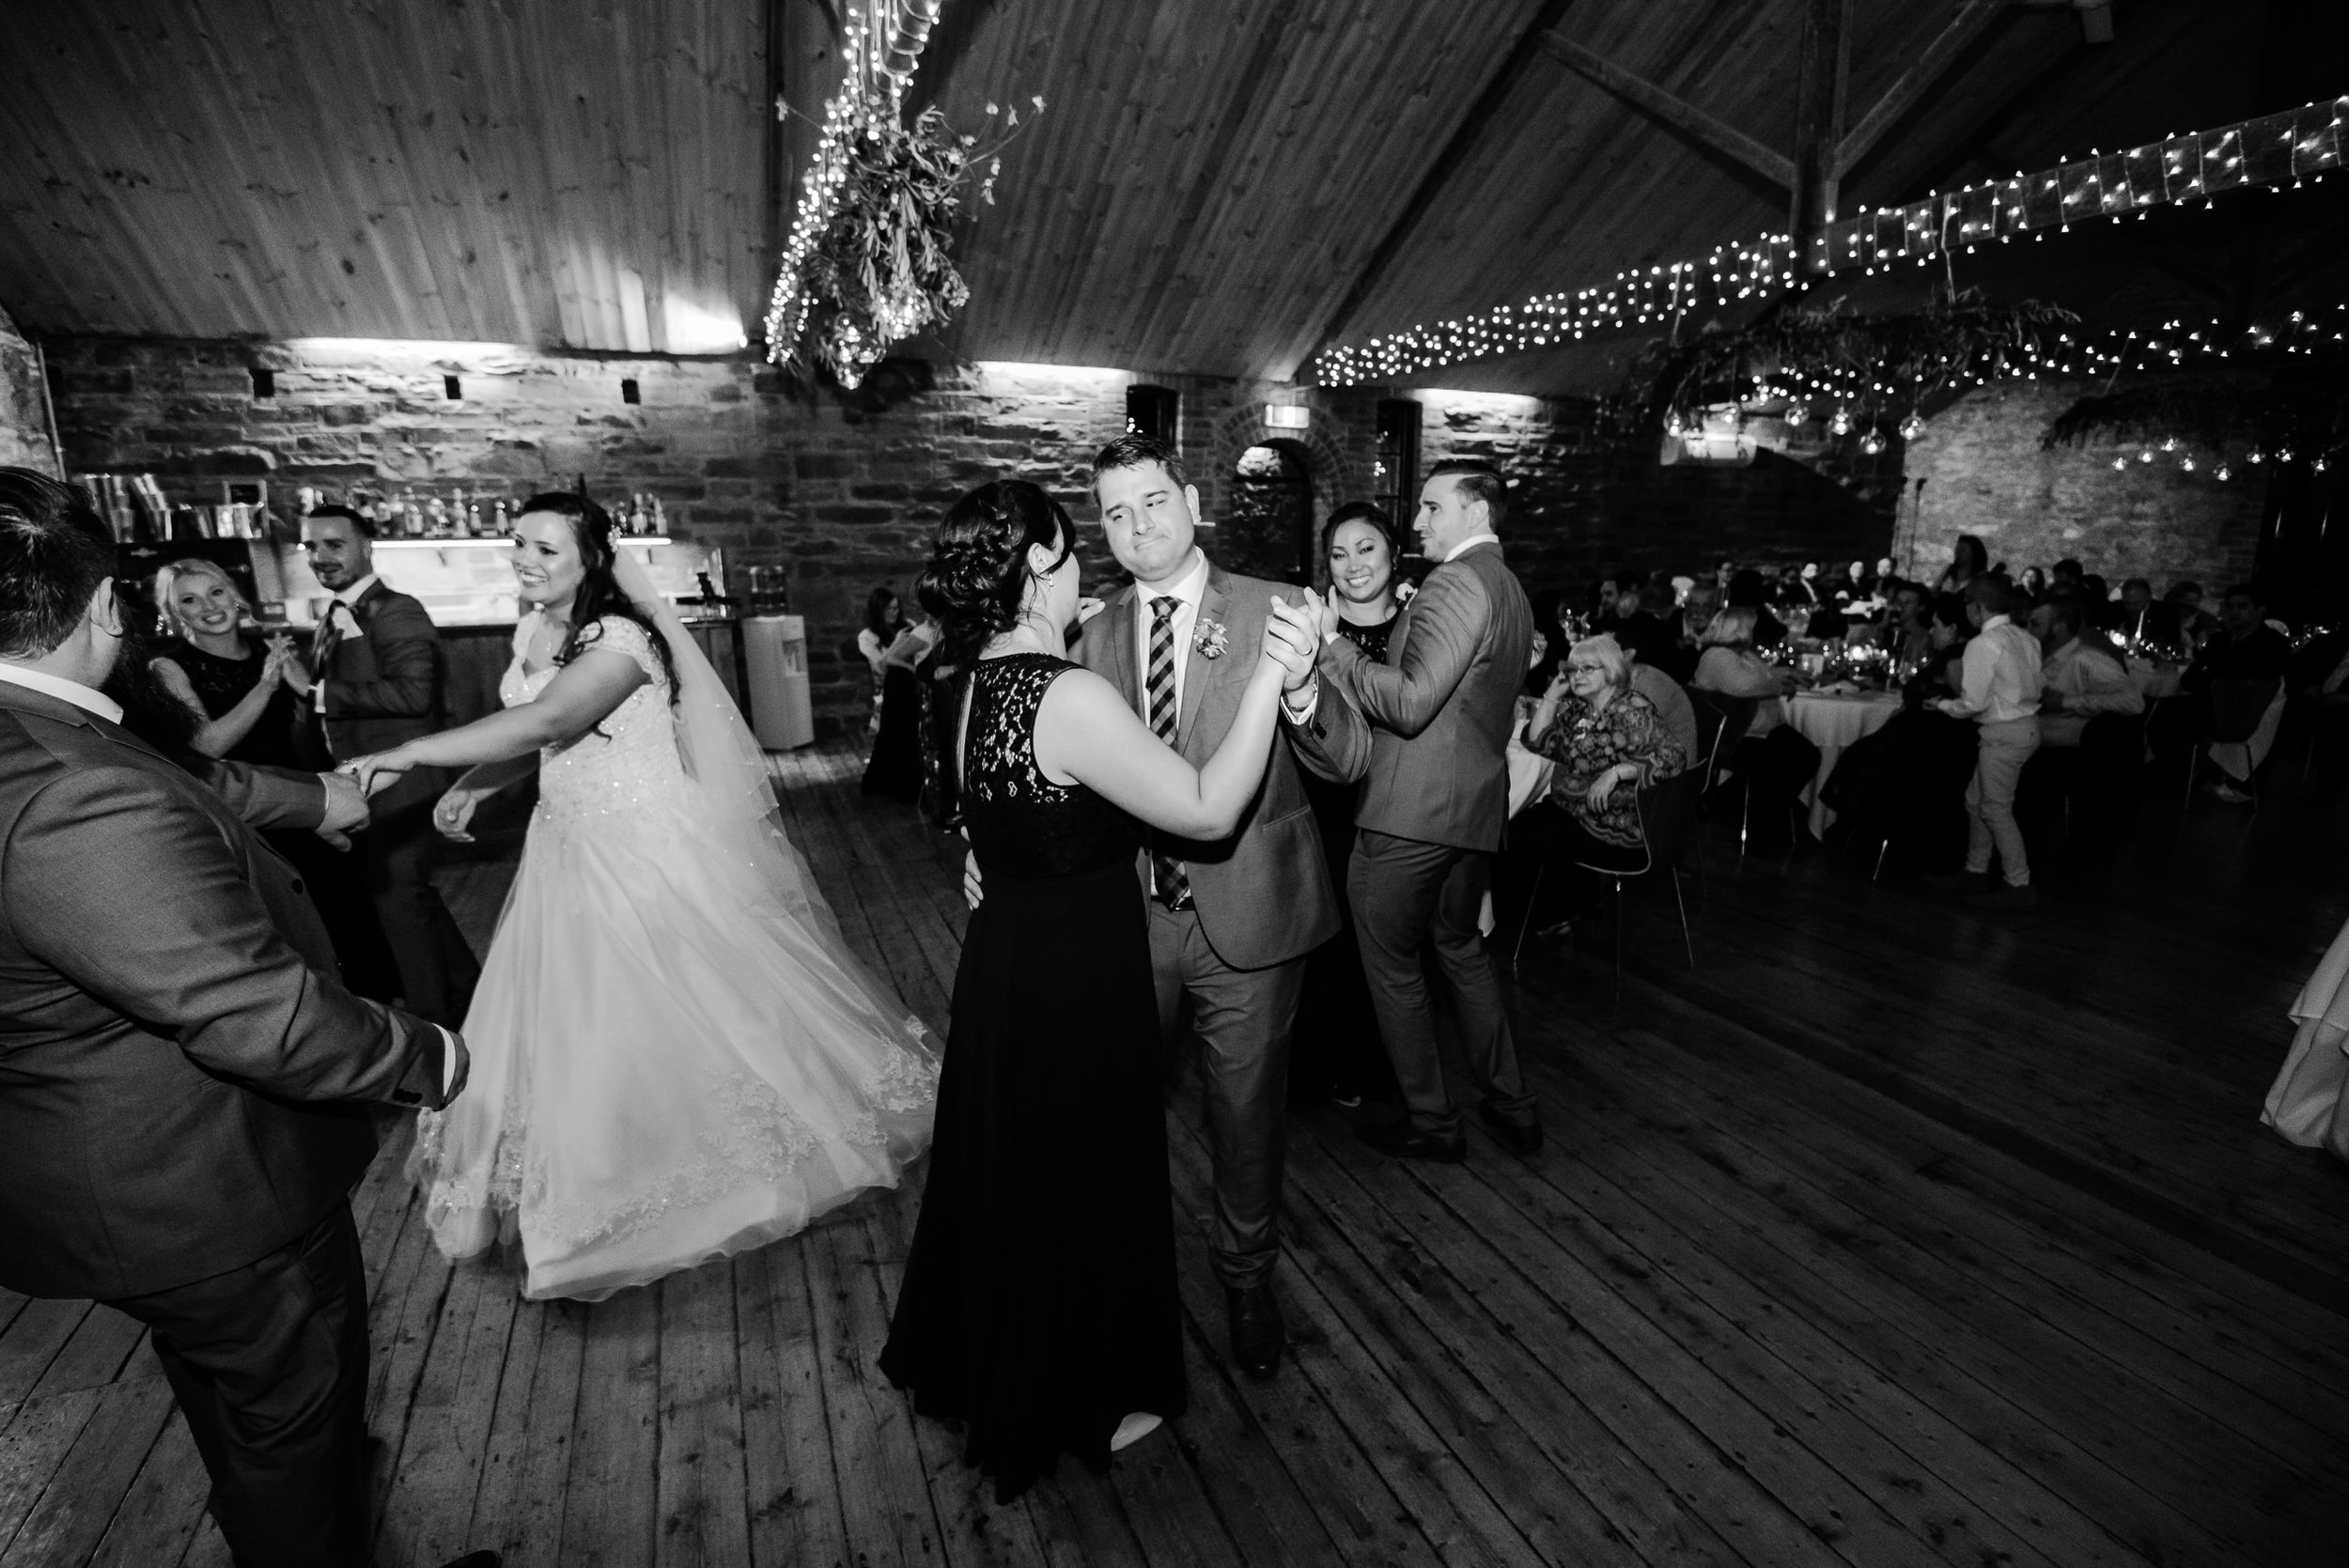 Chateau_Dore_Wedding_Photography_Justin_and_Jim-255.JPG